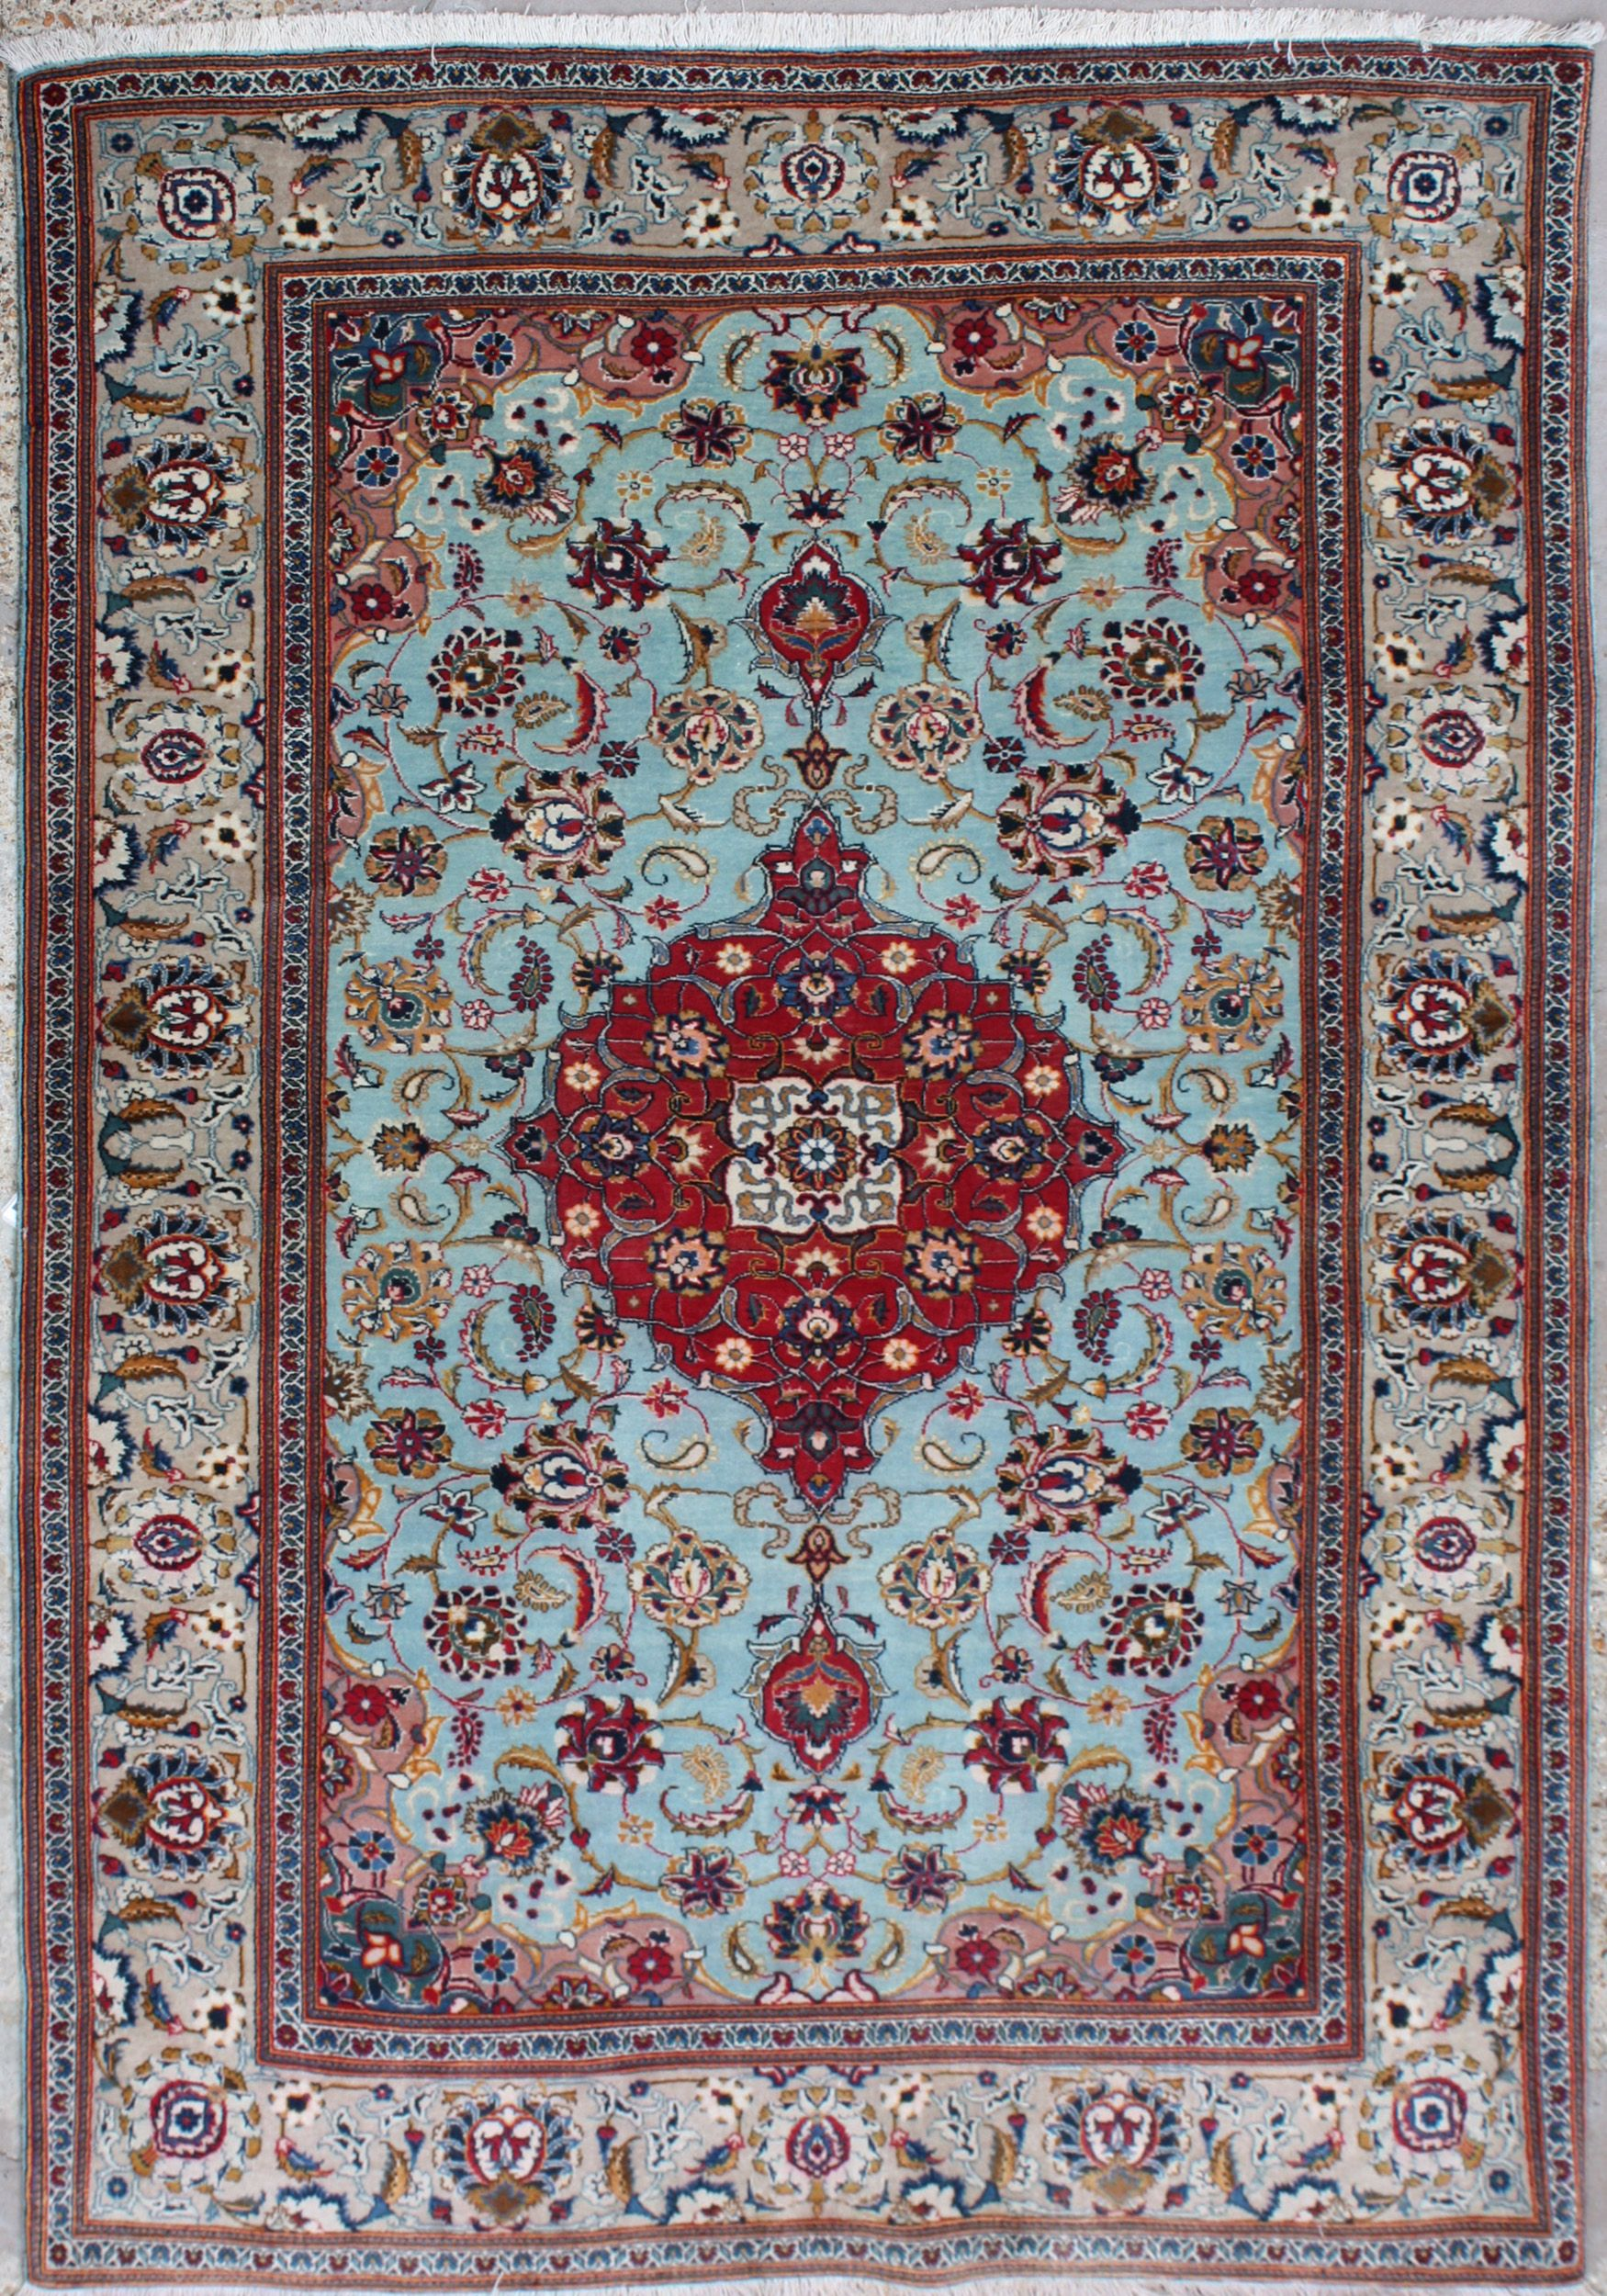 Gorgeous Persian Rug 55 To 60 Years Old 1500 Gbp